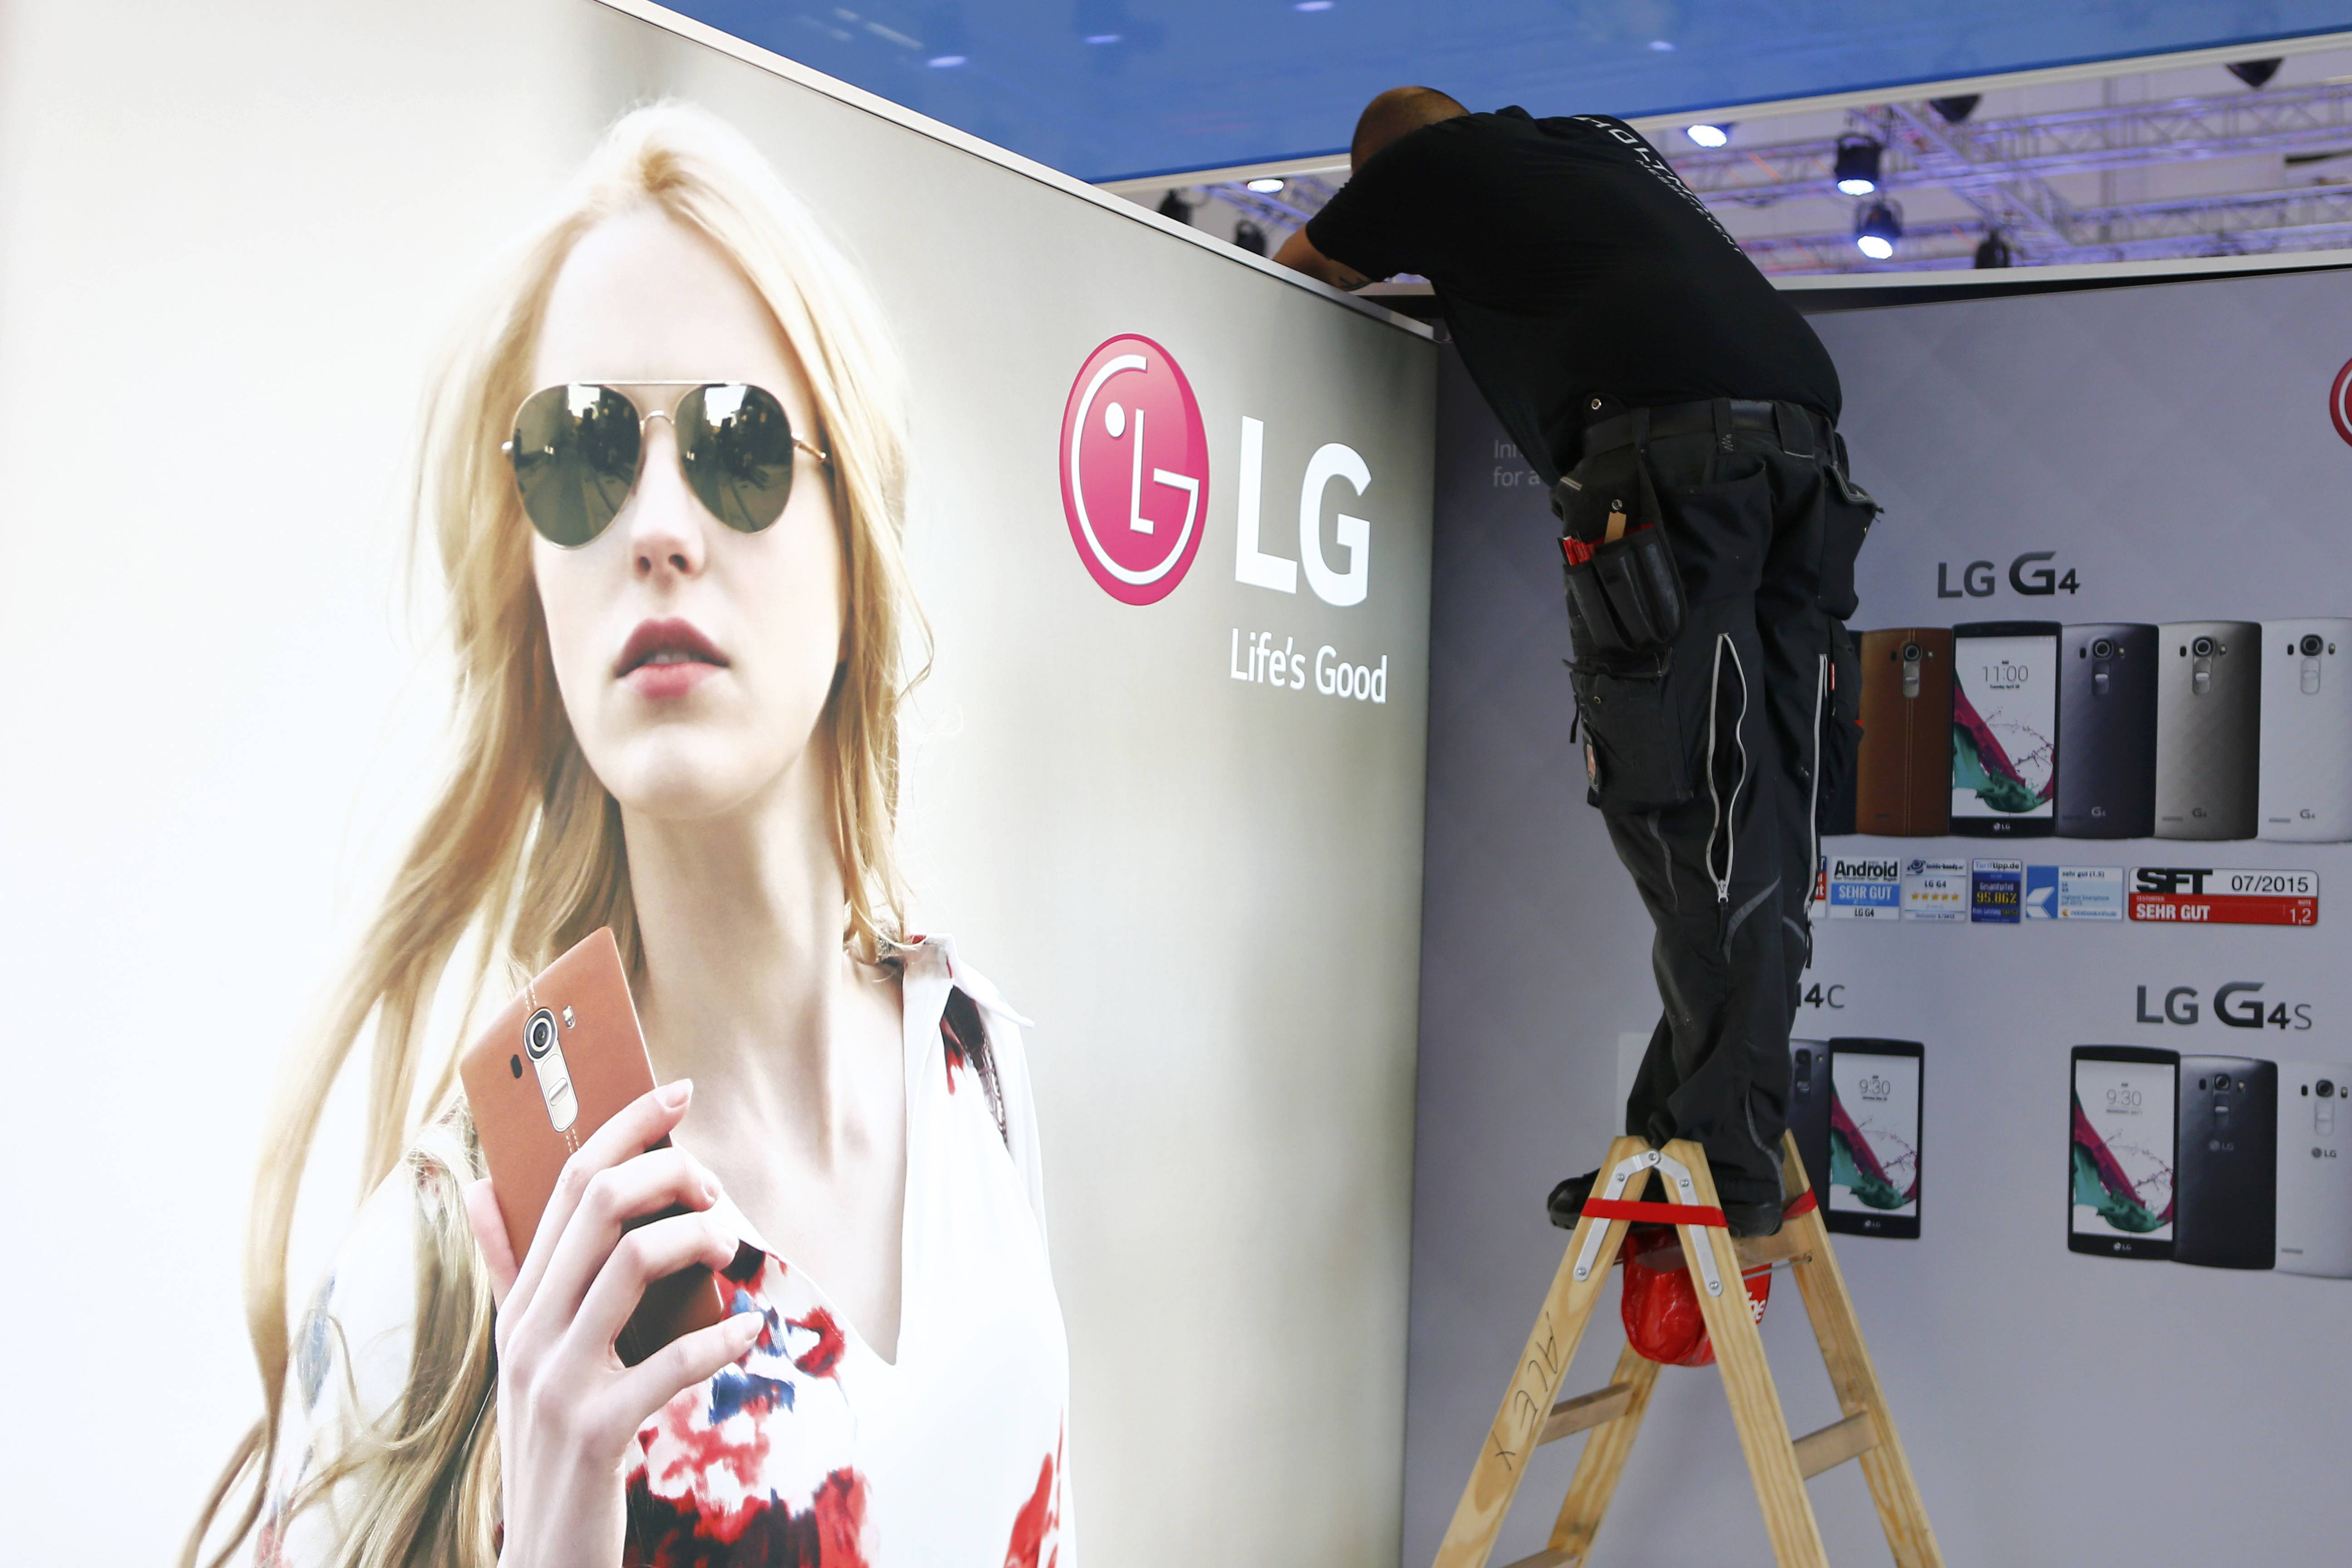 A worker makes adjustments at the booth of LG company at the IFA Electronics show in Berlin, Germany, September 2, 2015. Photo: Reuters